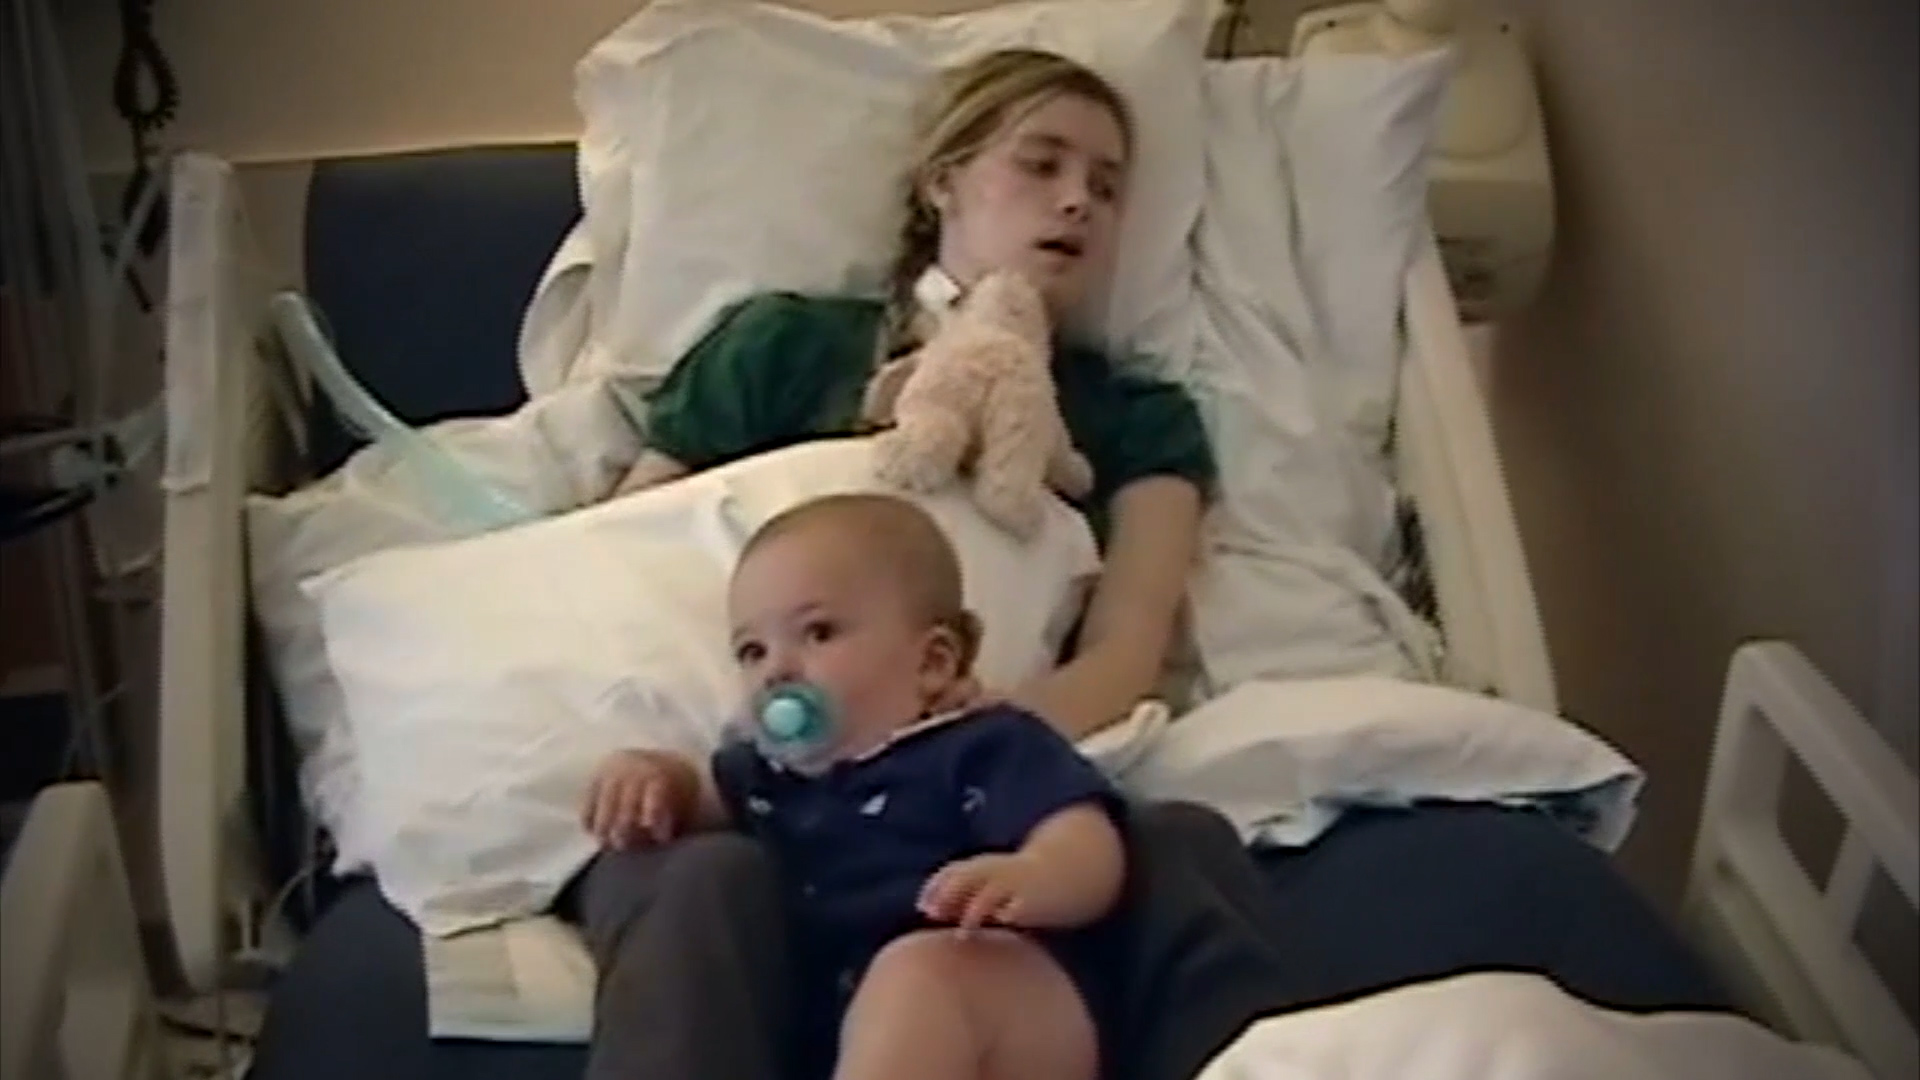 Parenting Against All Odds_Katherine and Jay Wolf - In Hospital Bed with Baby on Lap